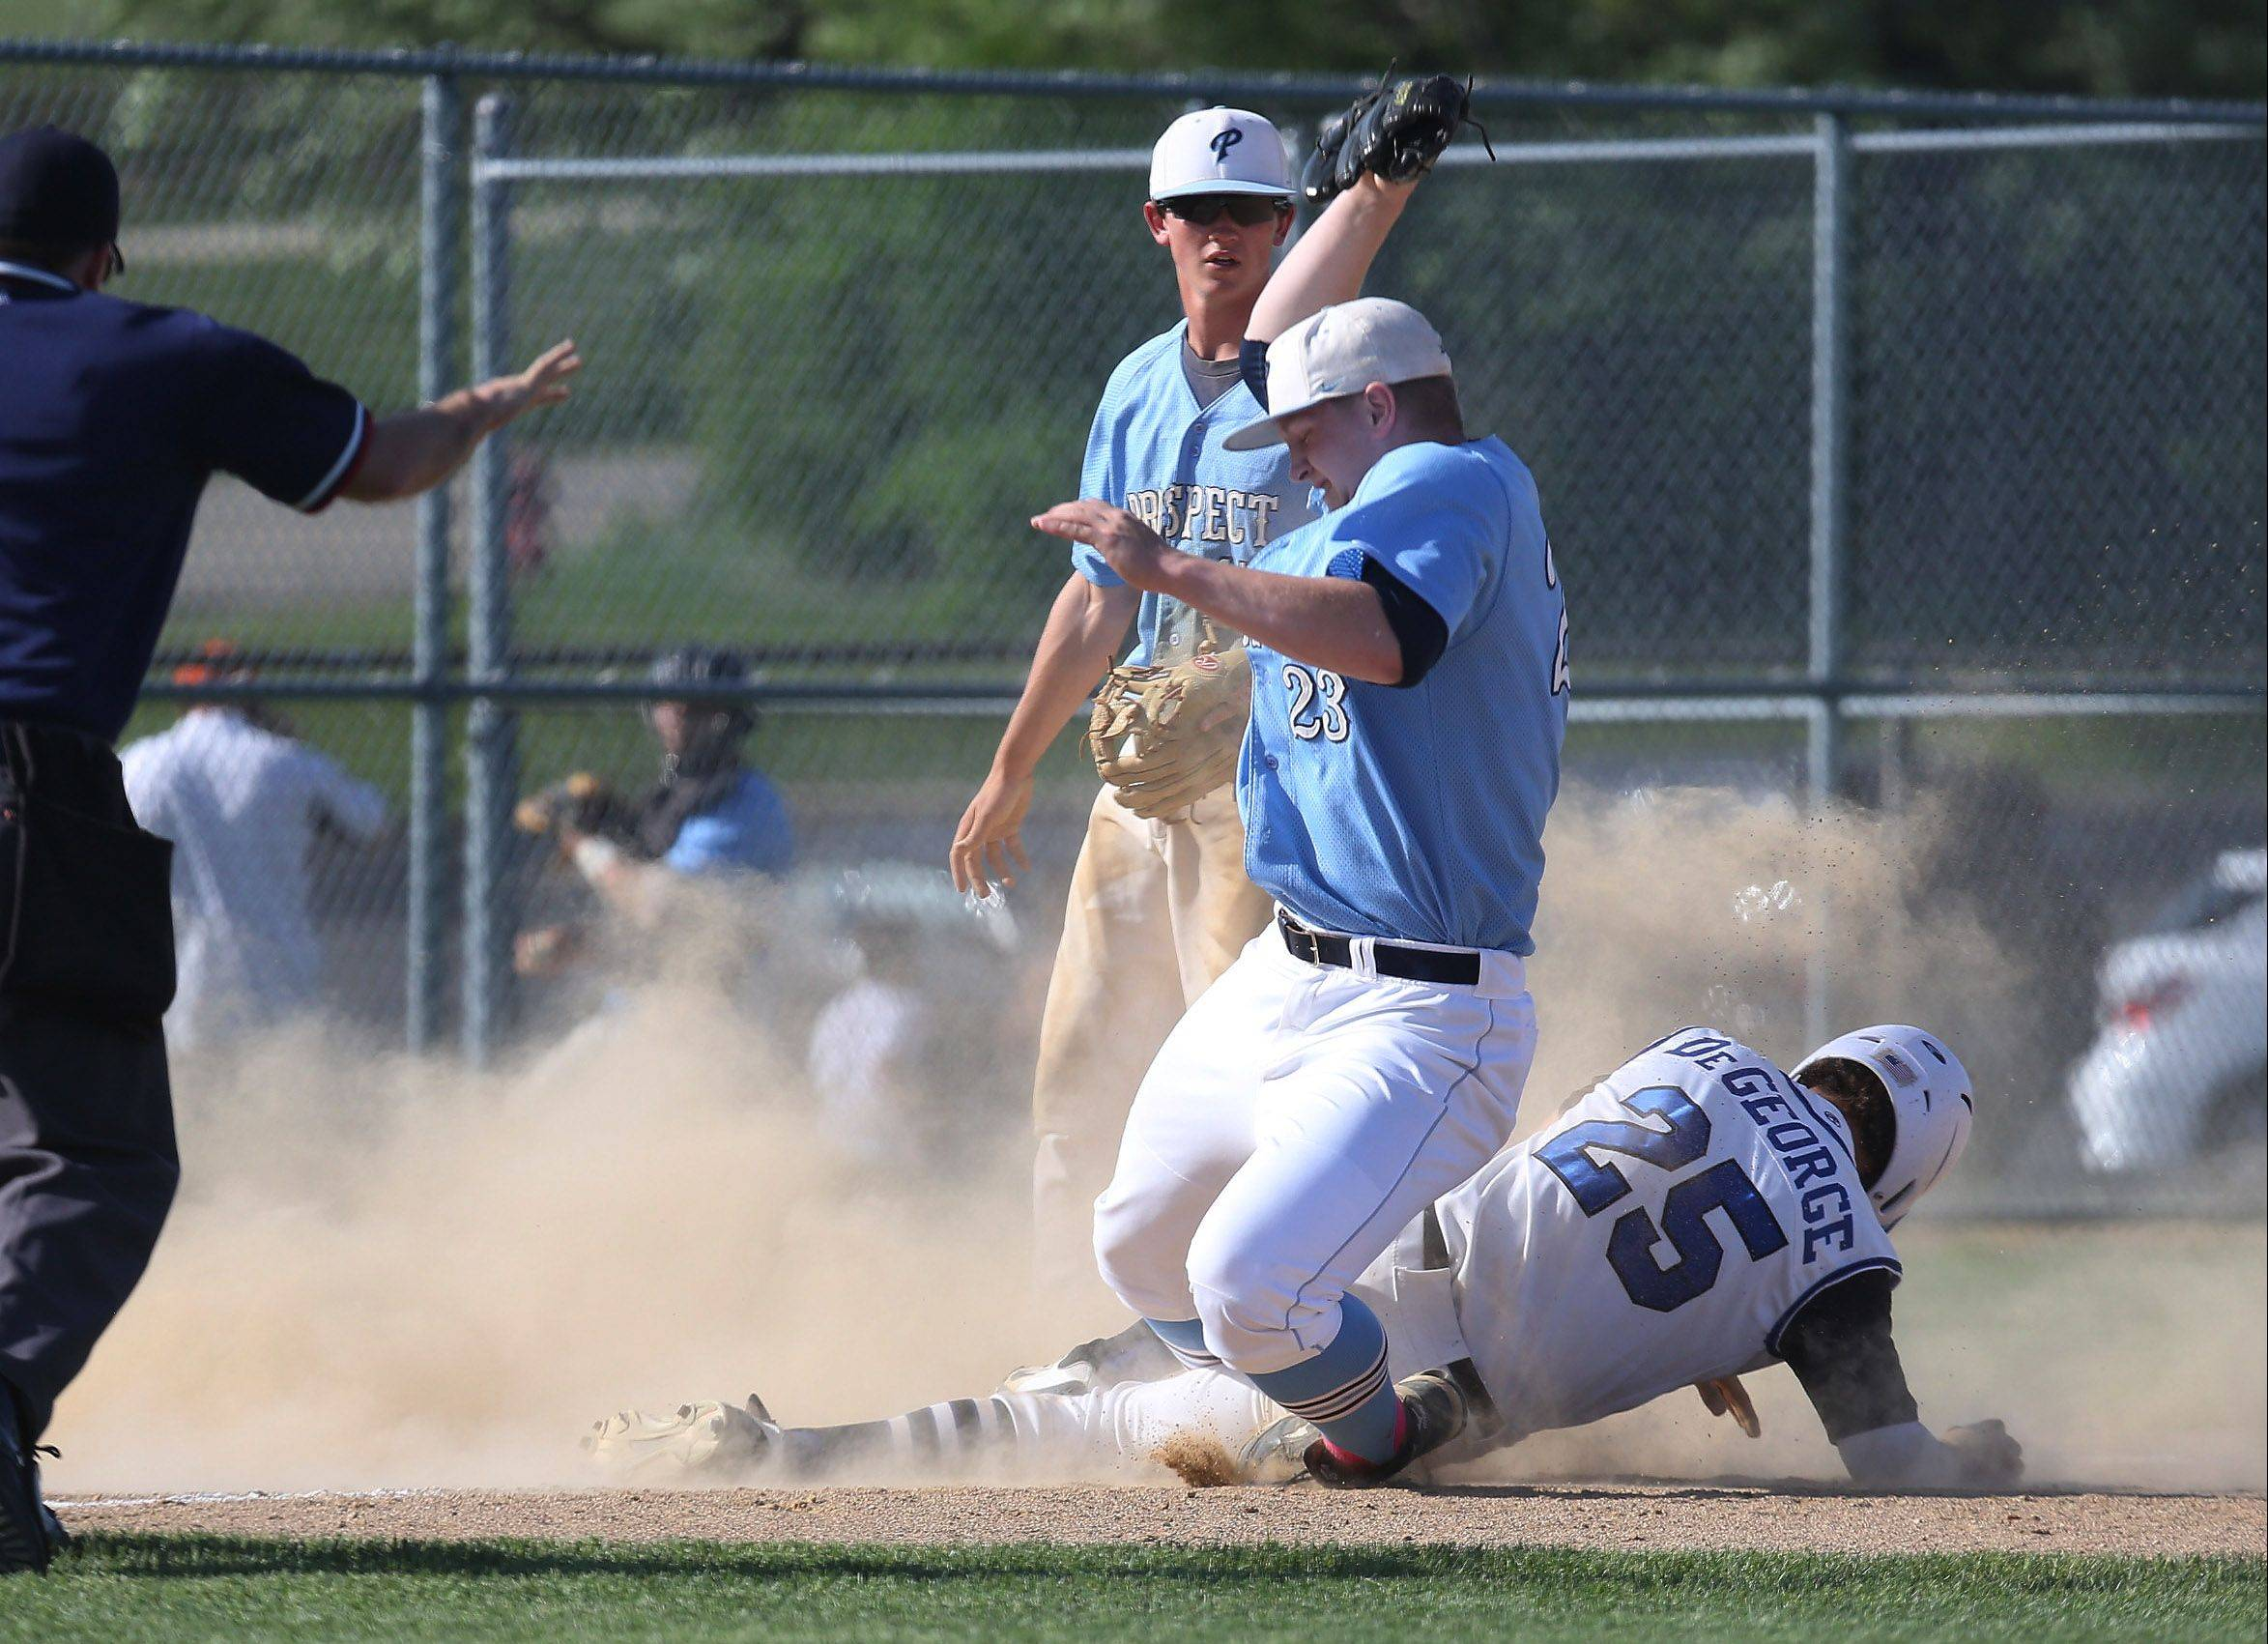 Lake Zurich's James DeGeorge slides safely into third base under the tag of Prospect pitcher Welby Malczewski in the first inning Monday at LZ.